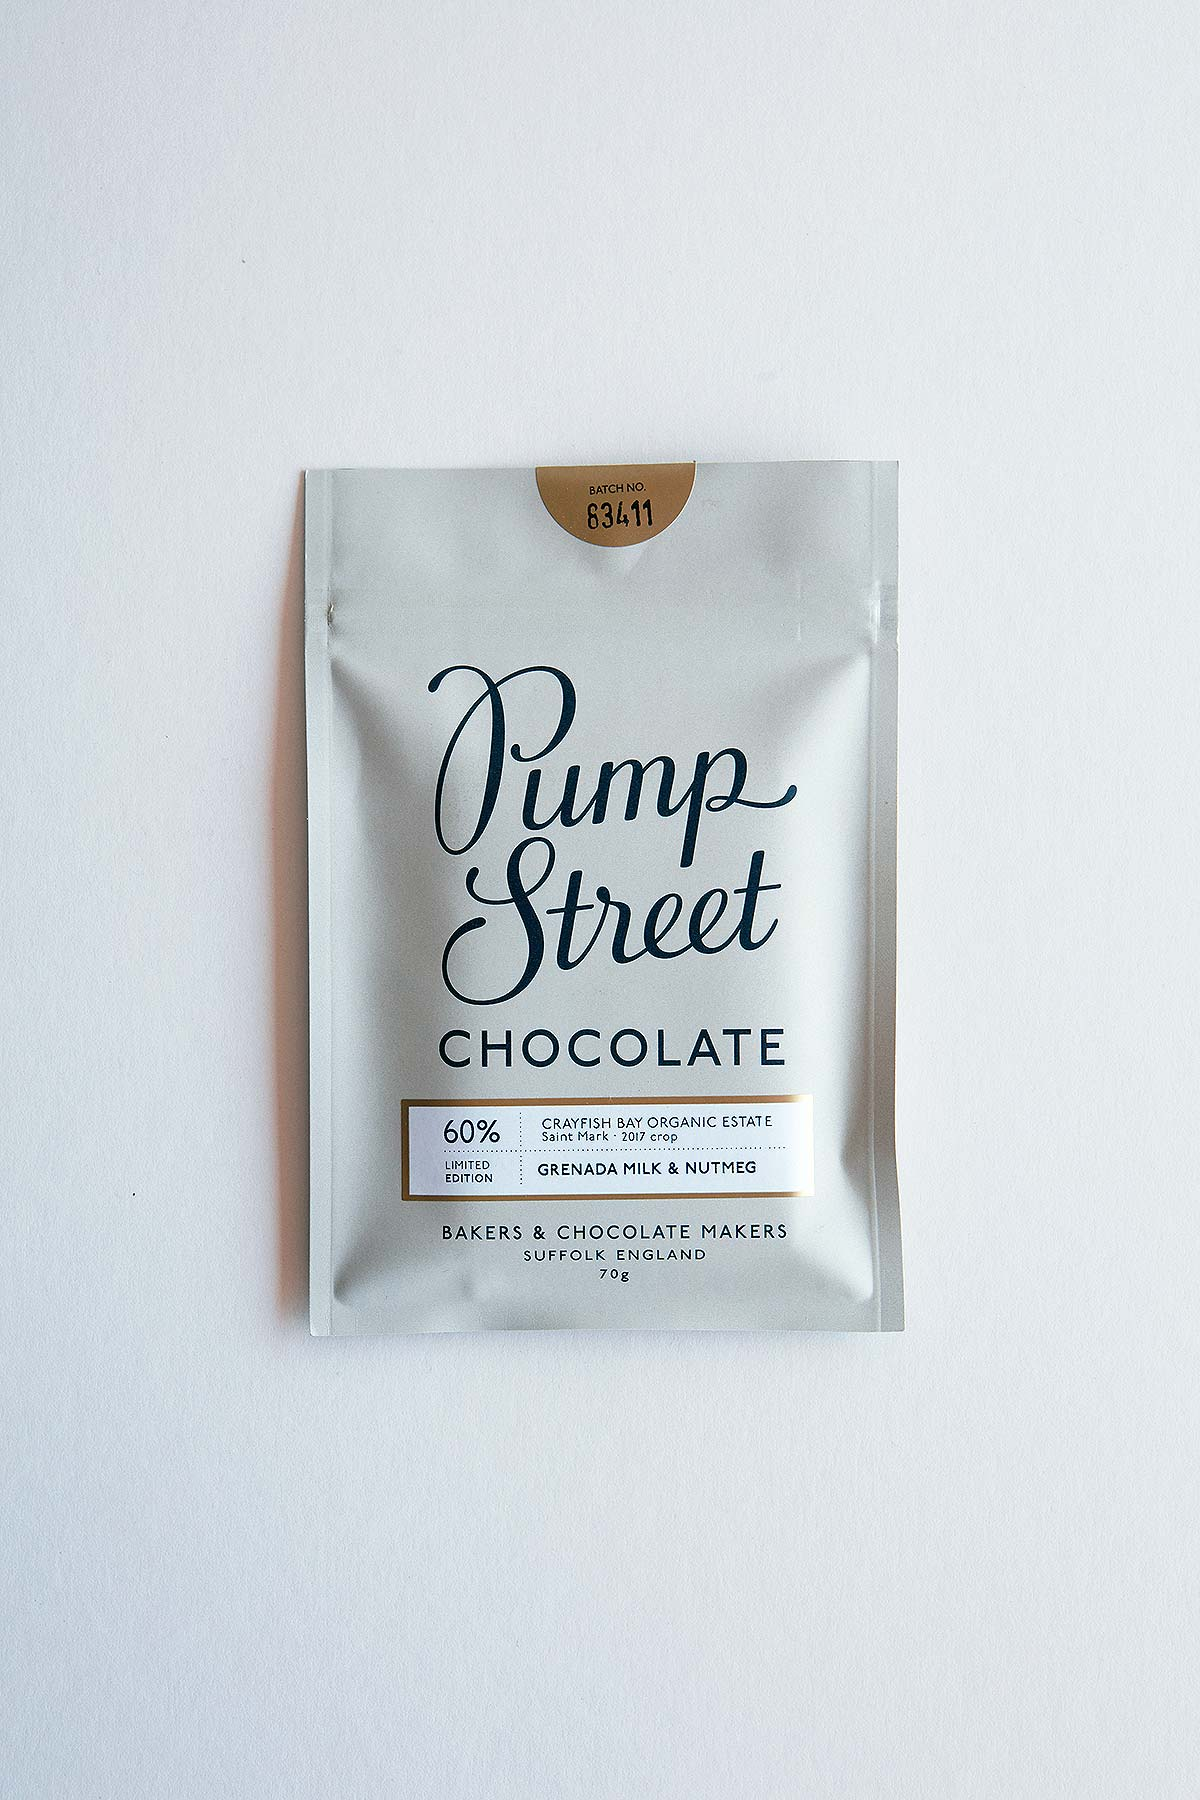 wrapped chocolate bar on white background